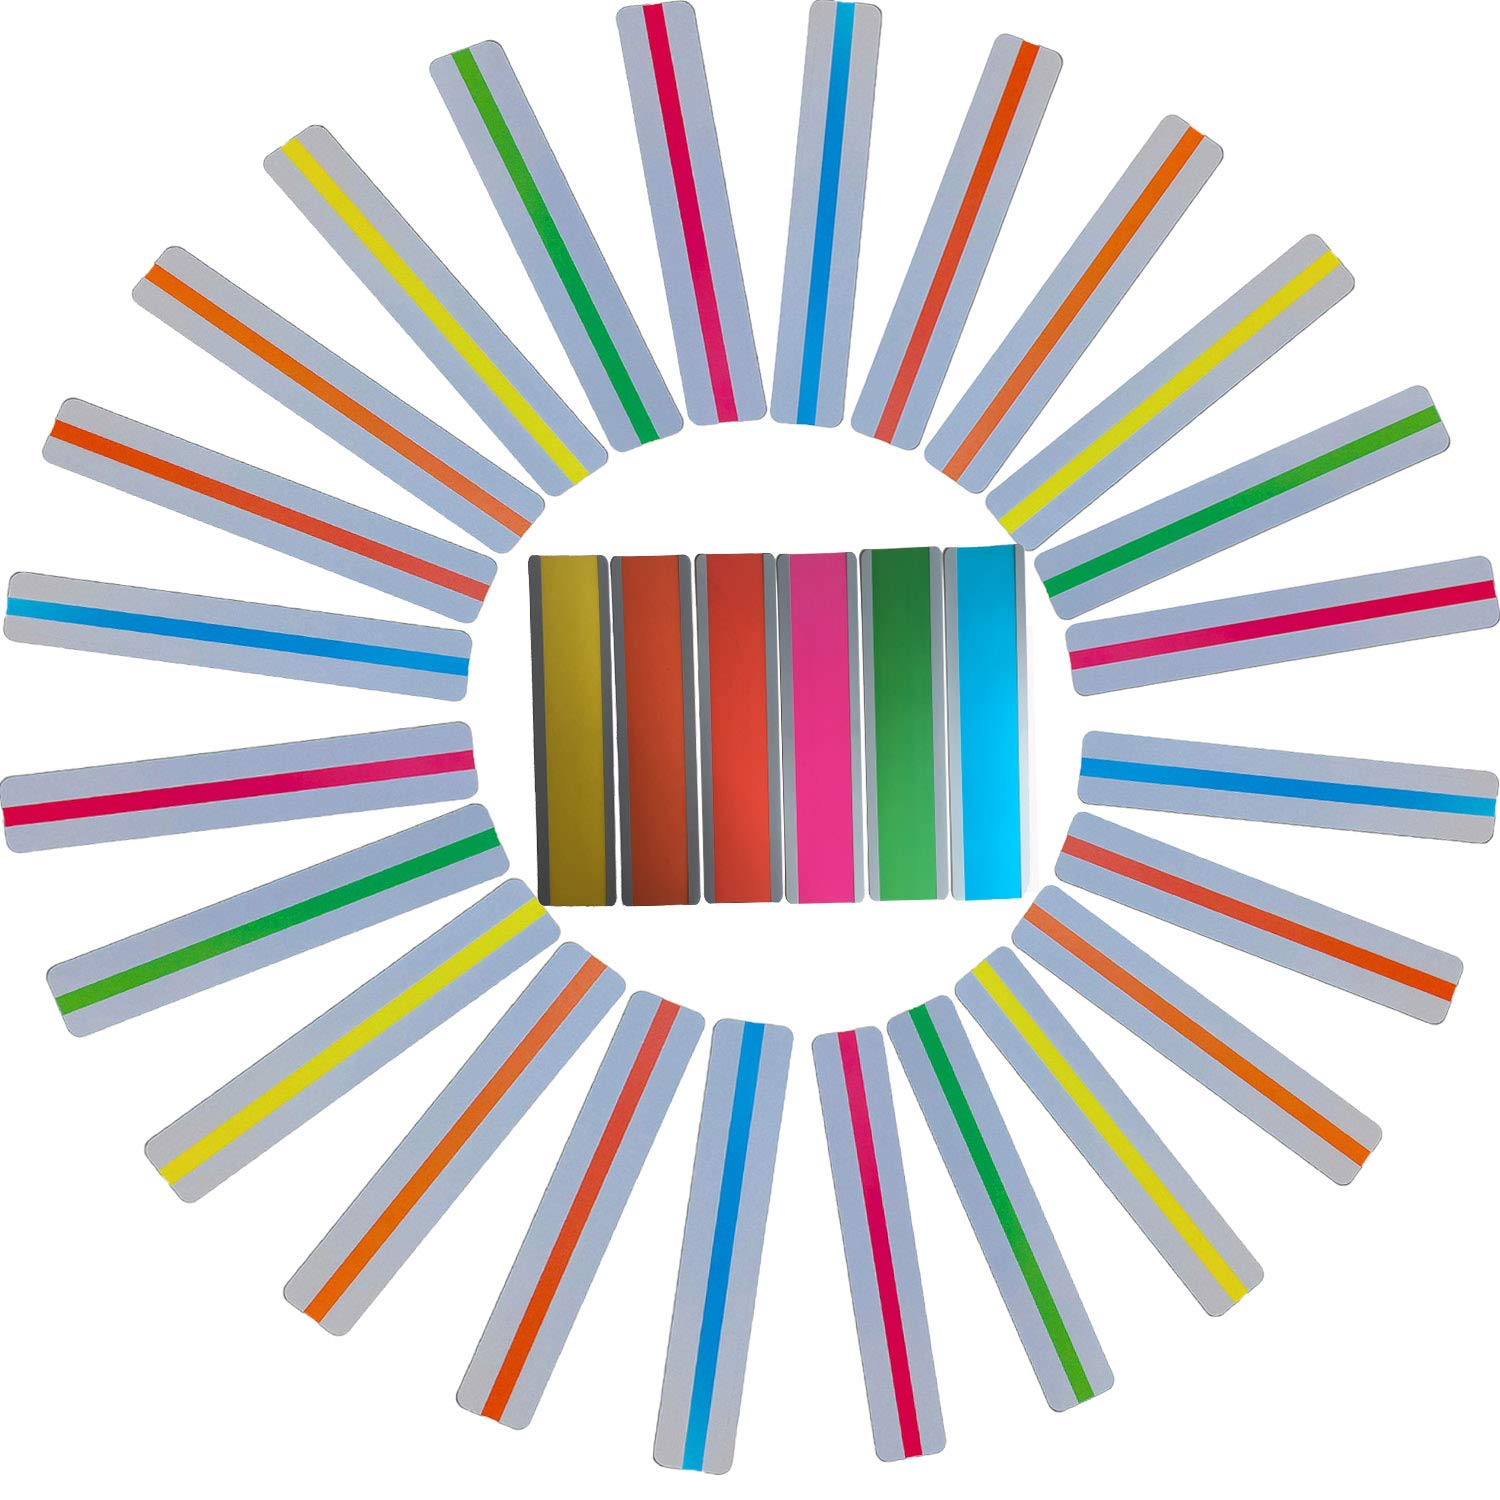 Reading Guide Strips - 30 Pack Highlighter Strips Colored Overlays Highlight Bookmarks for Children Adult with Dyslexia ADHD by Adawlert